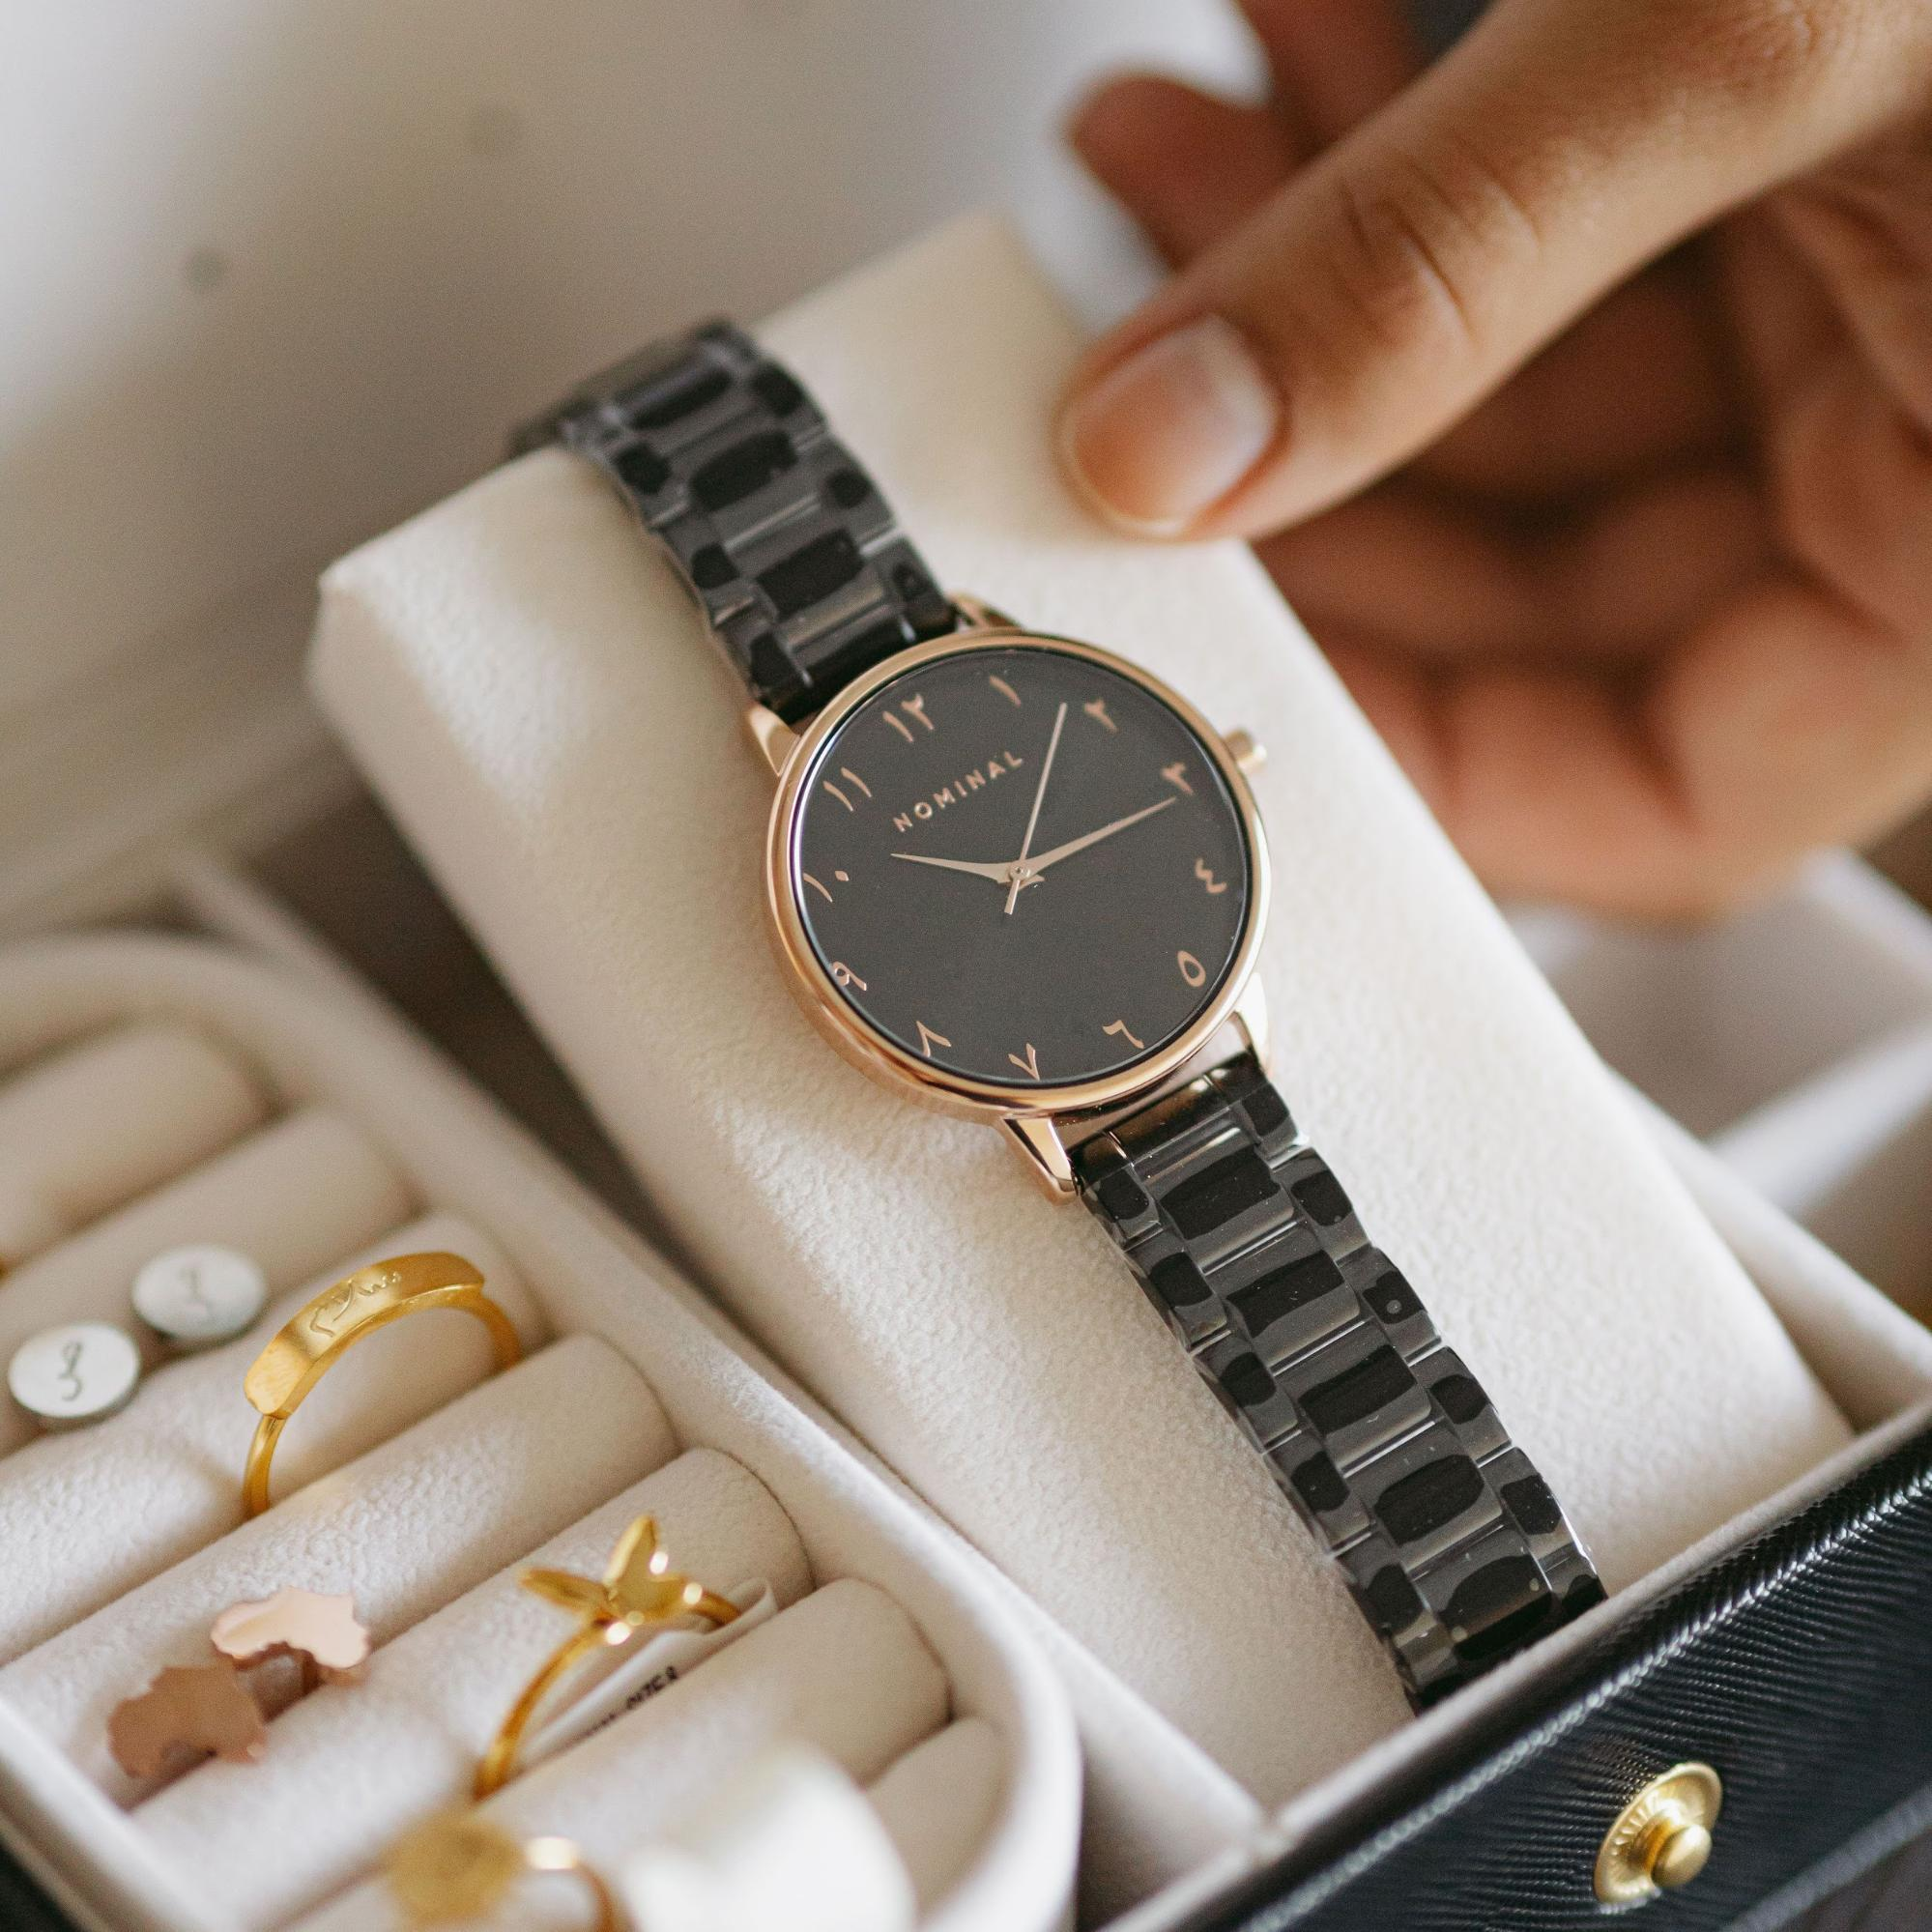 A watch, rings, and earrings in a jewelry box.